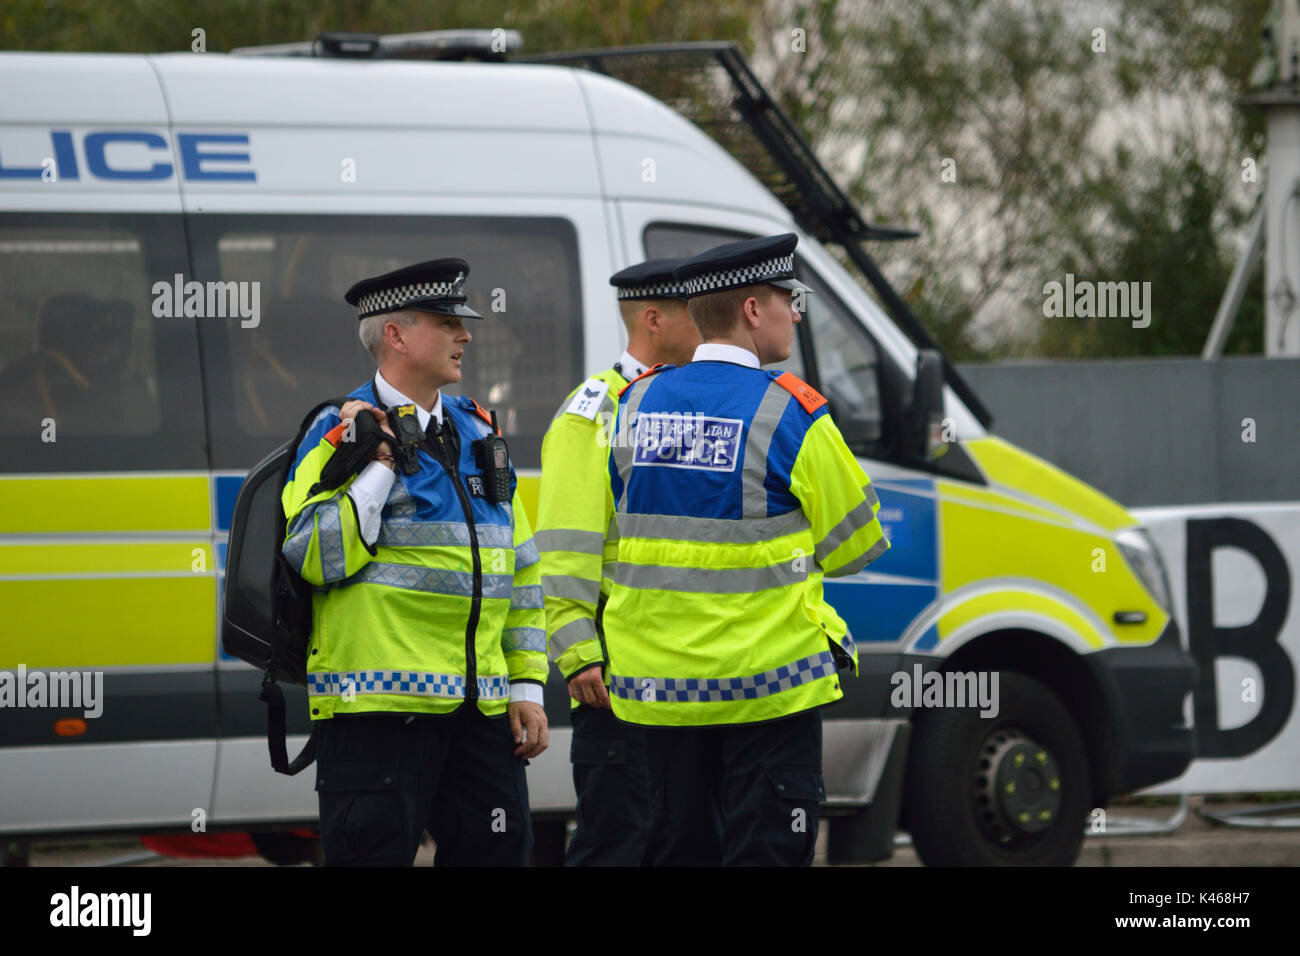 Metropolitan Police on duty in London - Stock Image